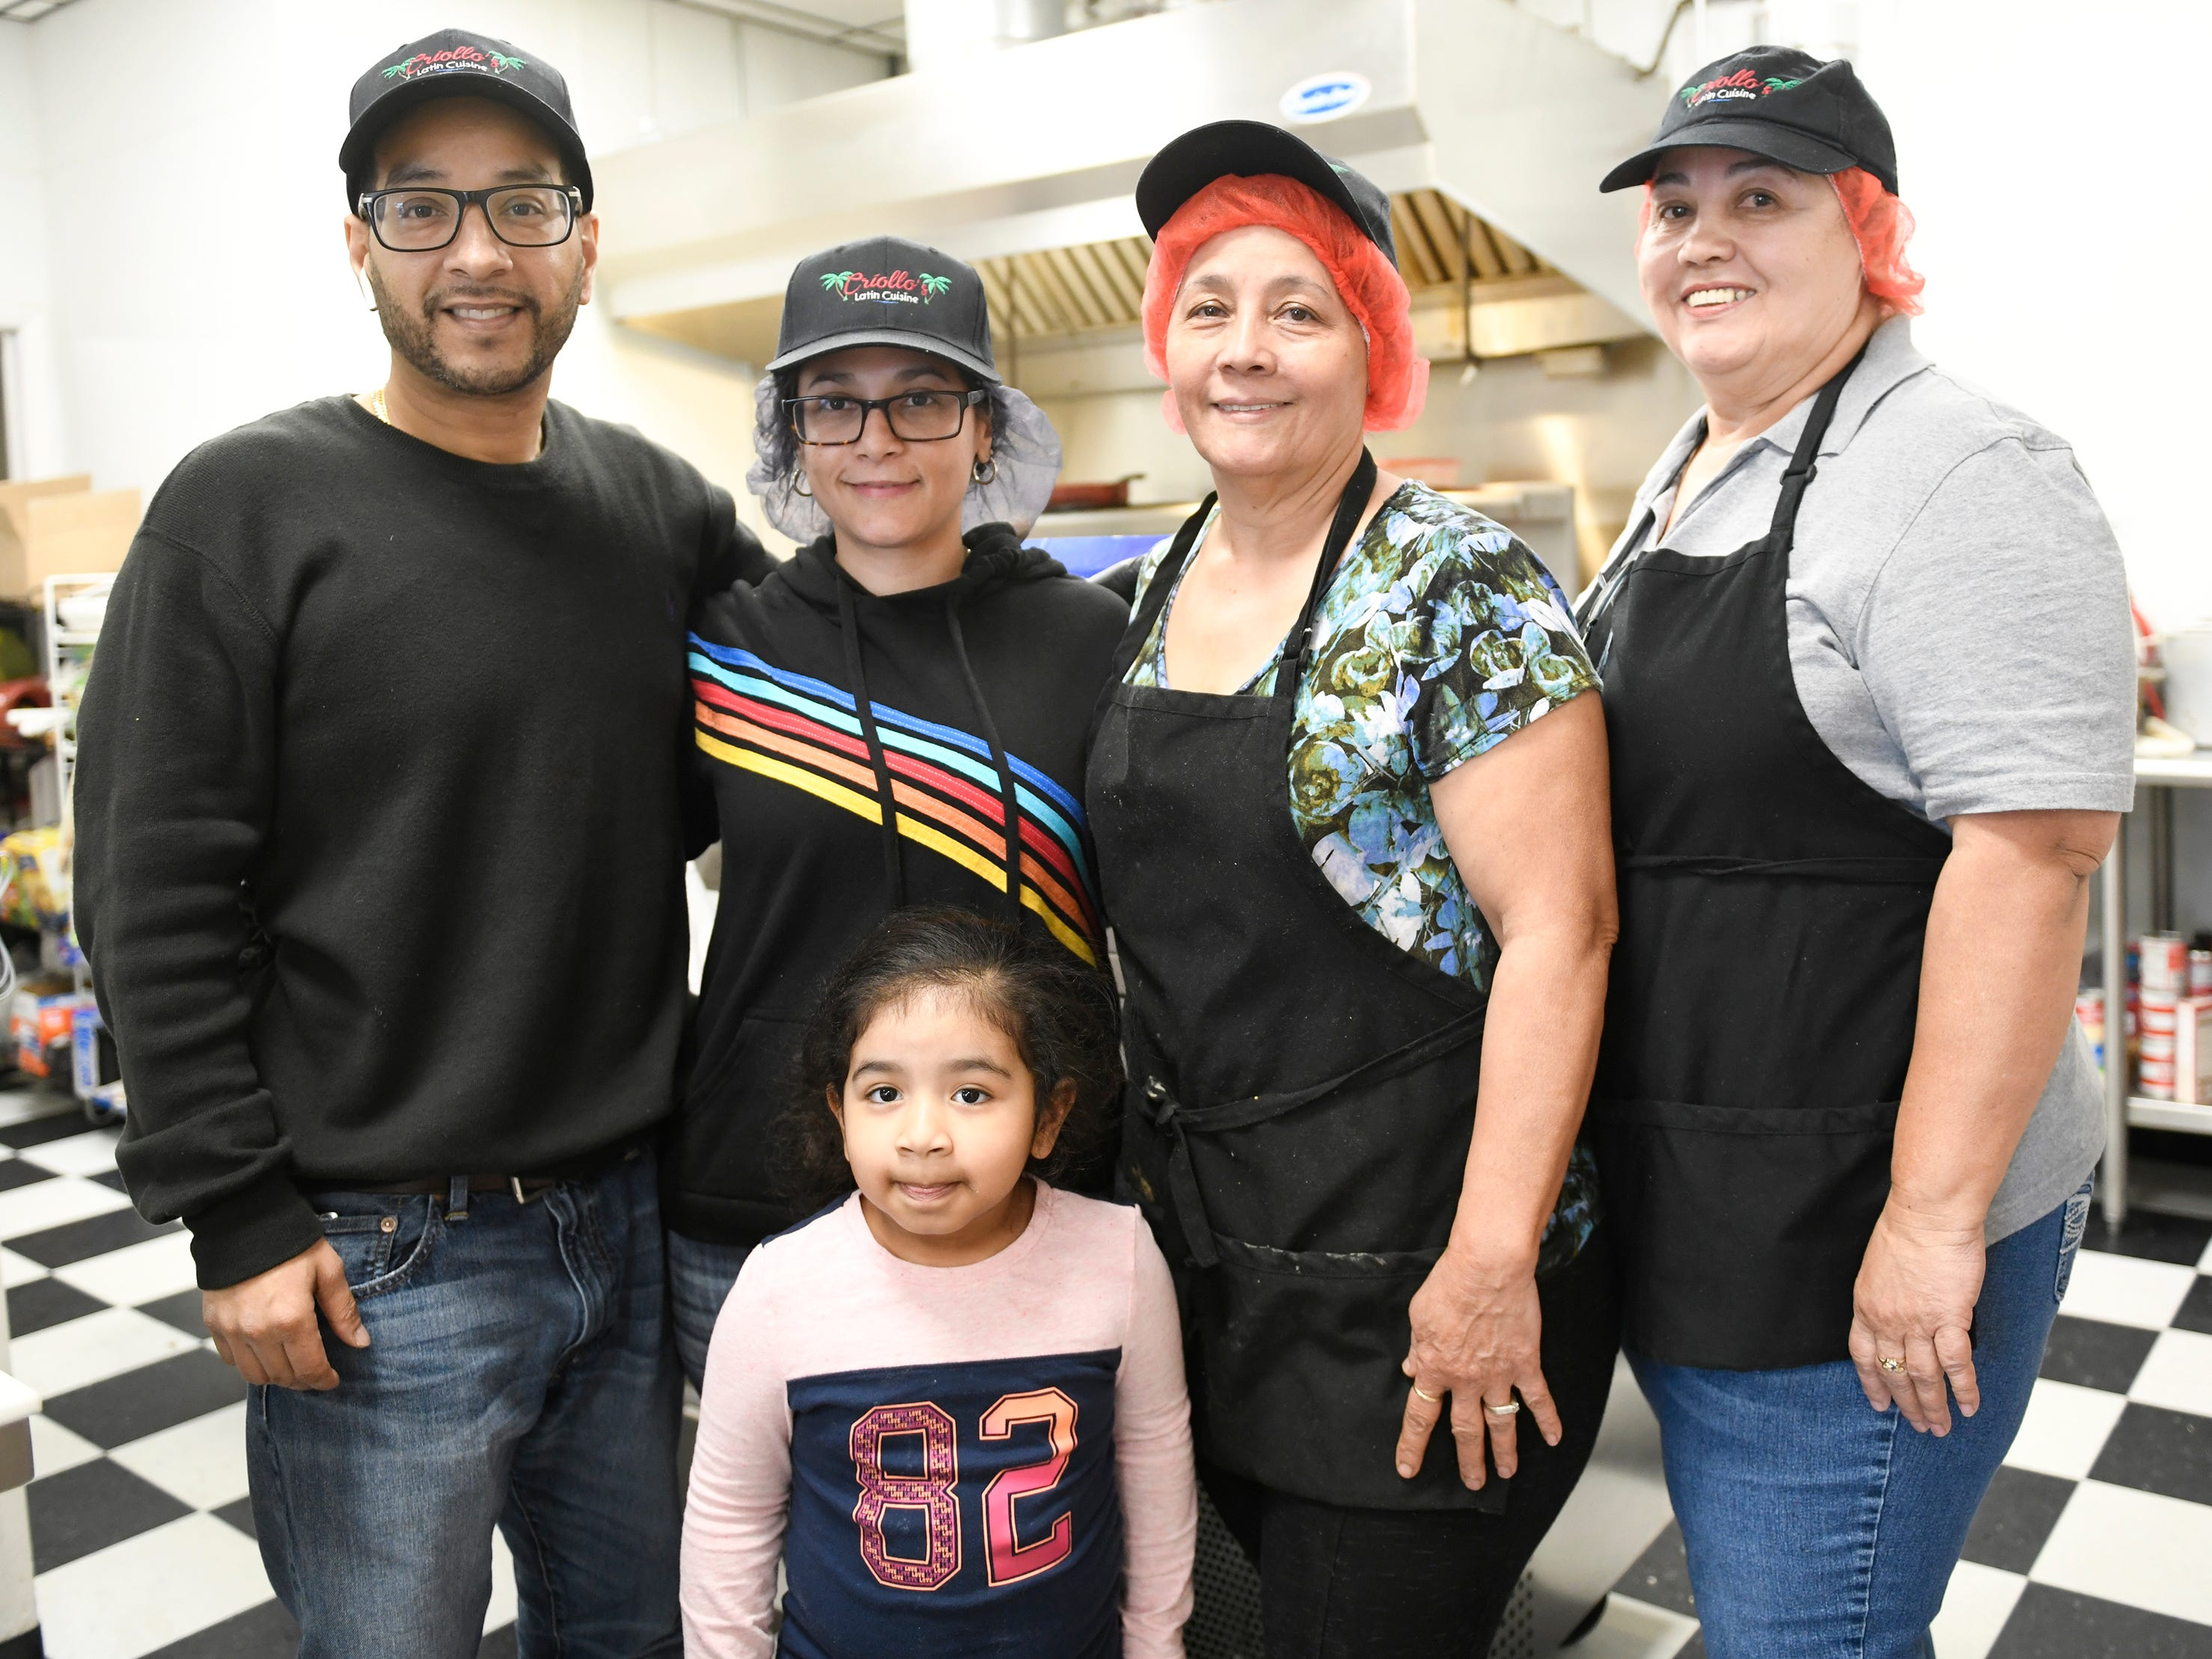 From left to right, Criollo's Latin Cuisine owners Scott and Elsie Guzman, Emy Flores, Kathy Flores and the Guzman's daughter Eliar pose for a photo inside the Millville restaurant.